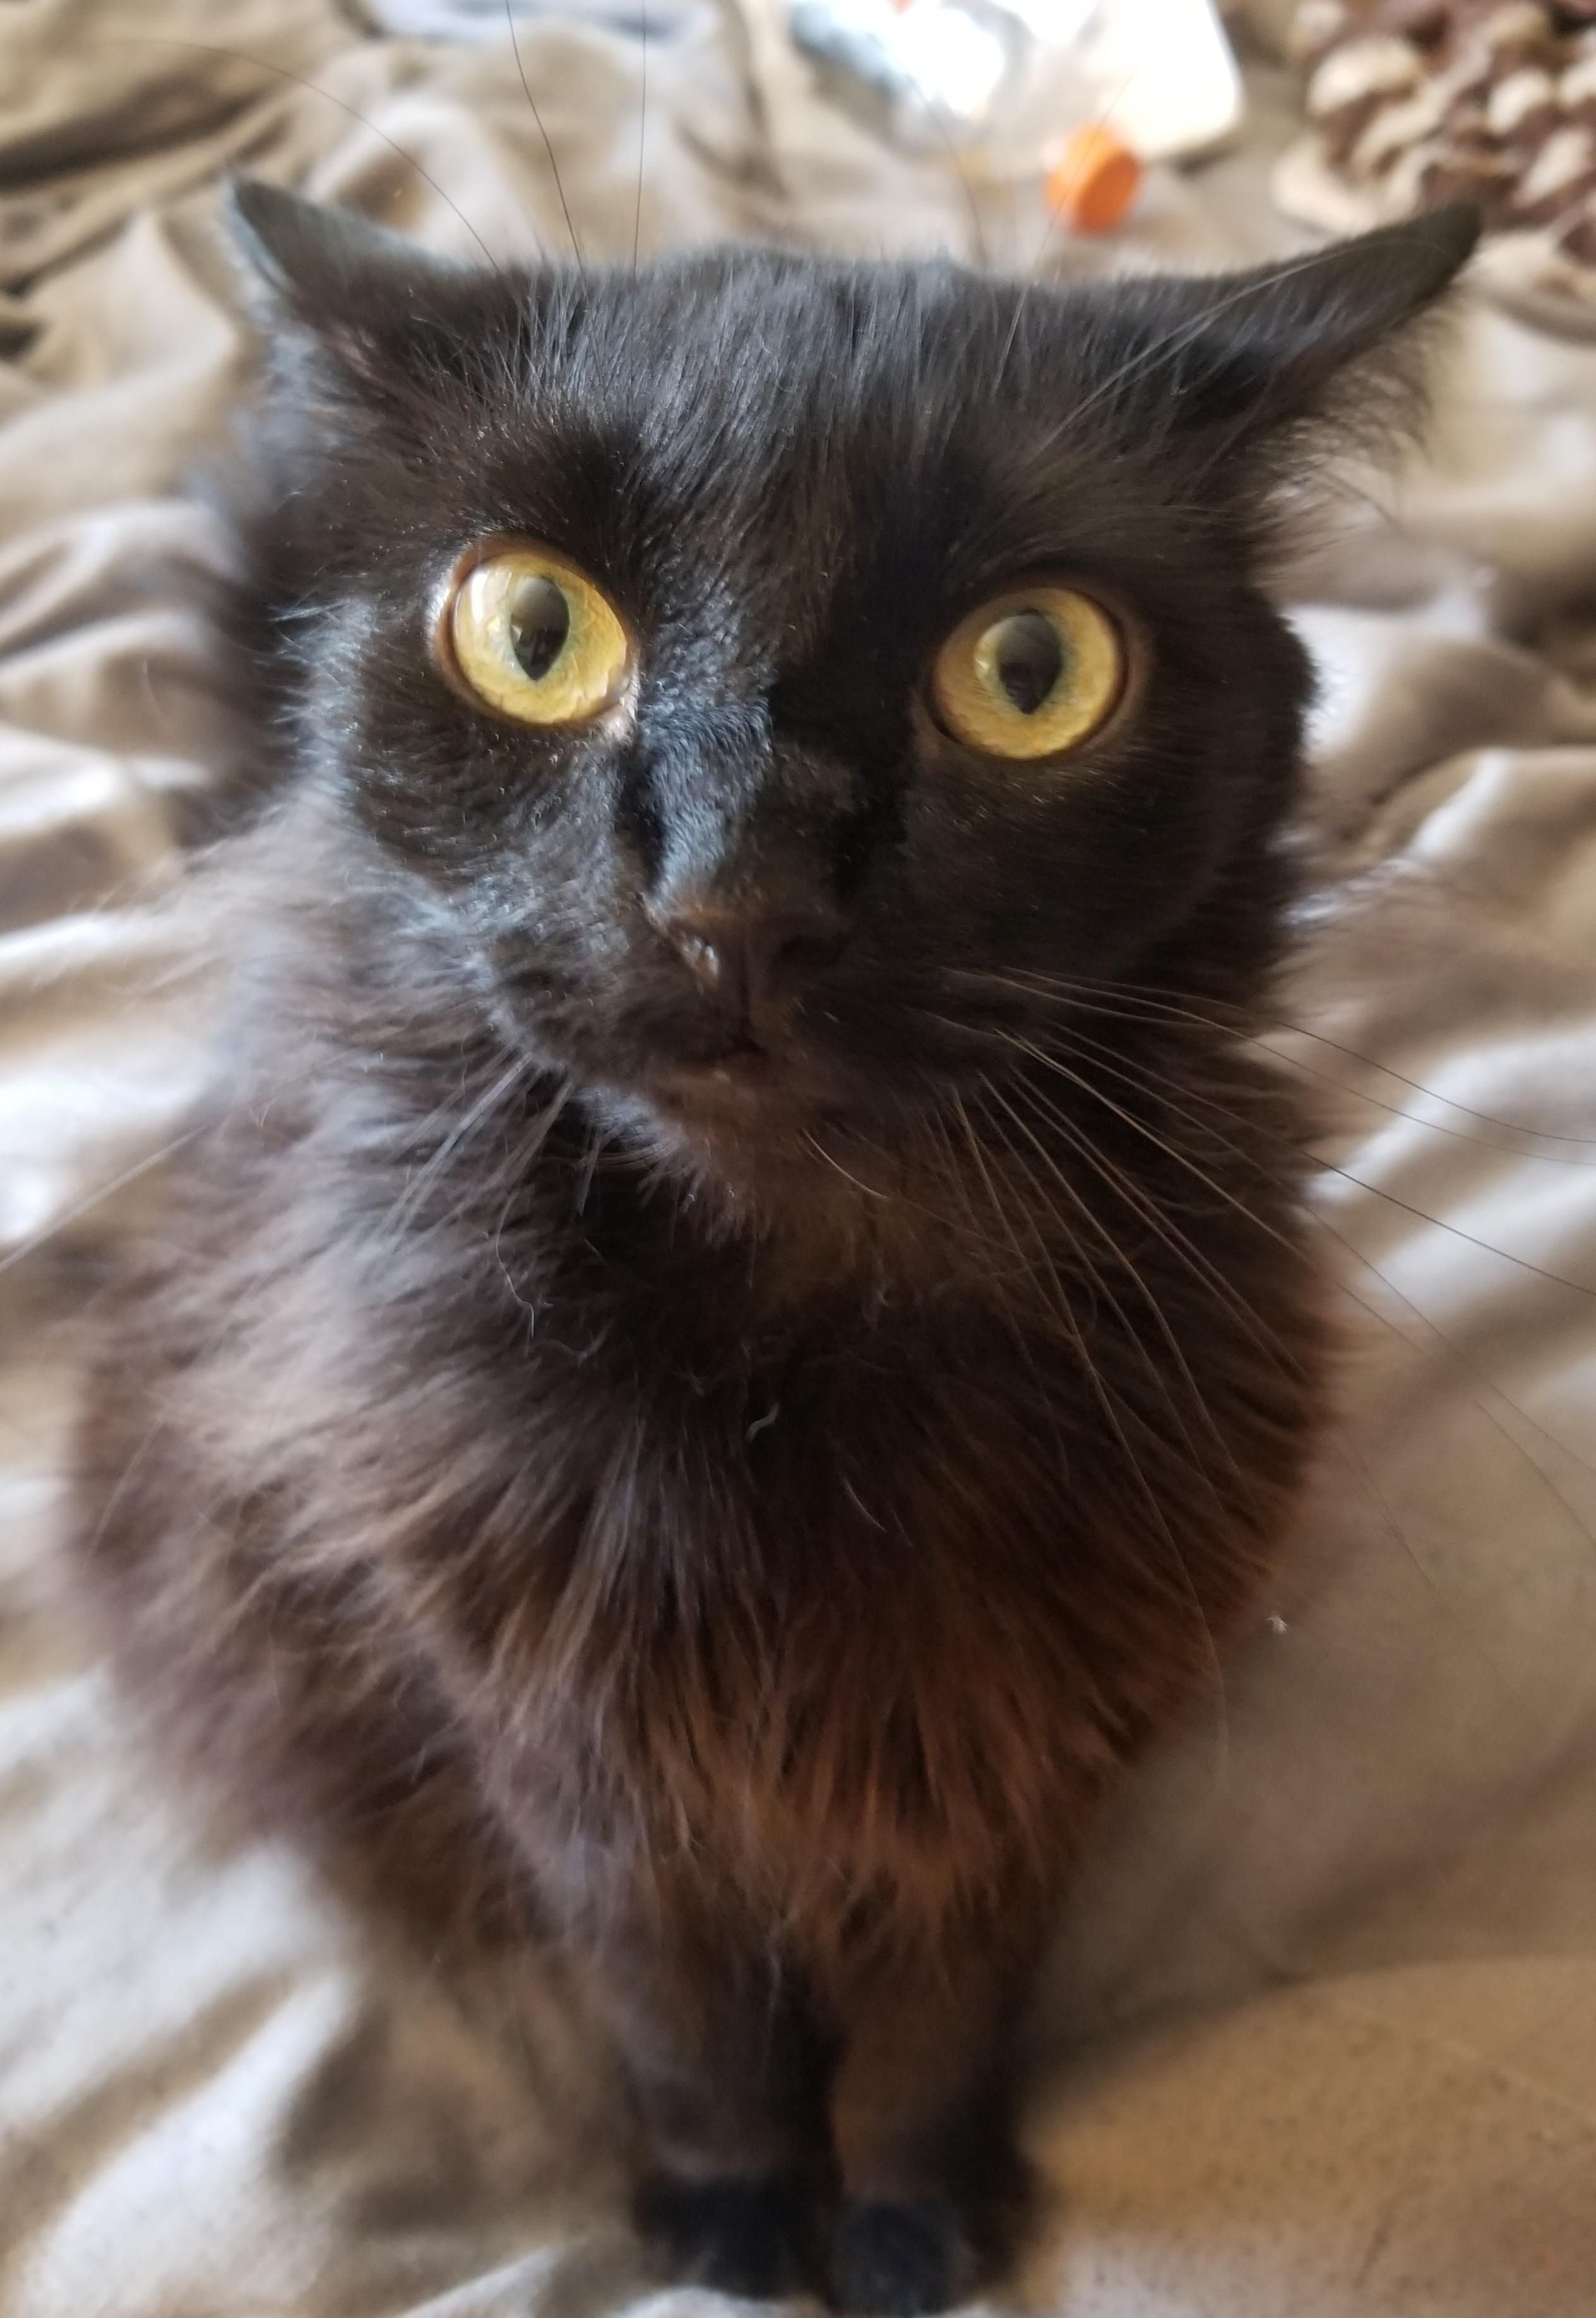 My Hyperactive Little Apollo And His Crazy Eyes Hello There Bright People Are You Catlover Or Have You Any Pre Cat Having Kittens Cat Has Fleas Cat Fleas